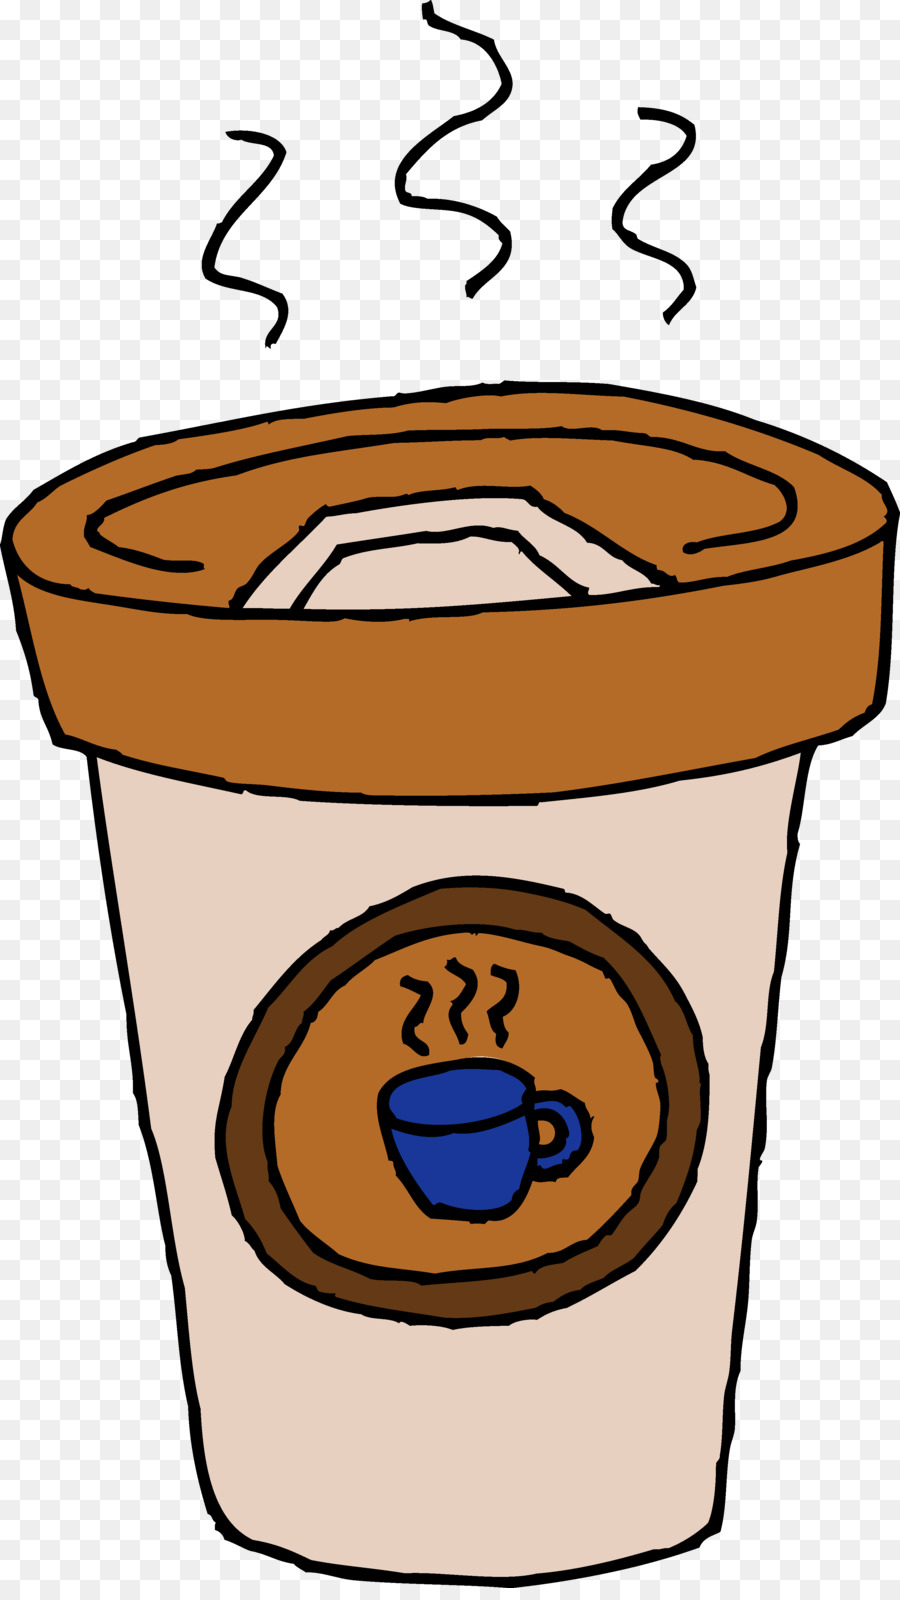 Cup of coffee tea. Cafe clipart latte